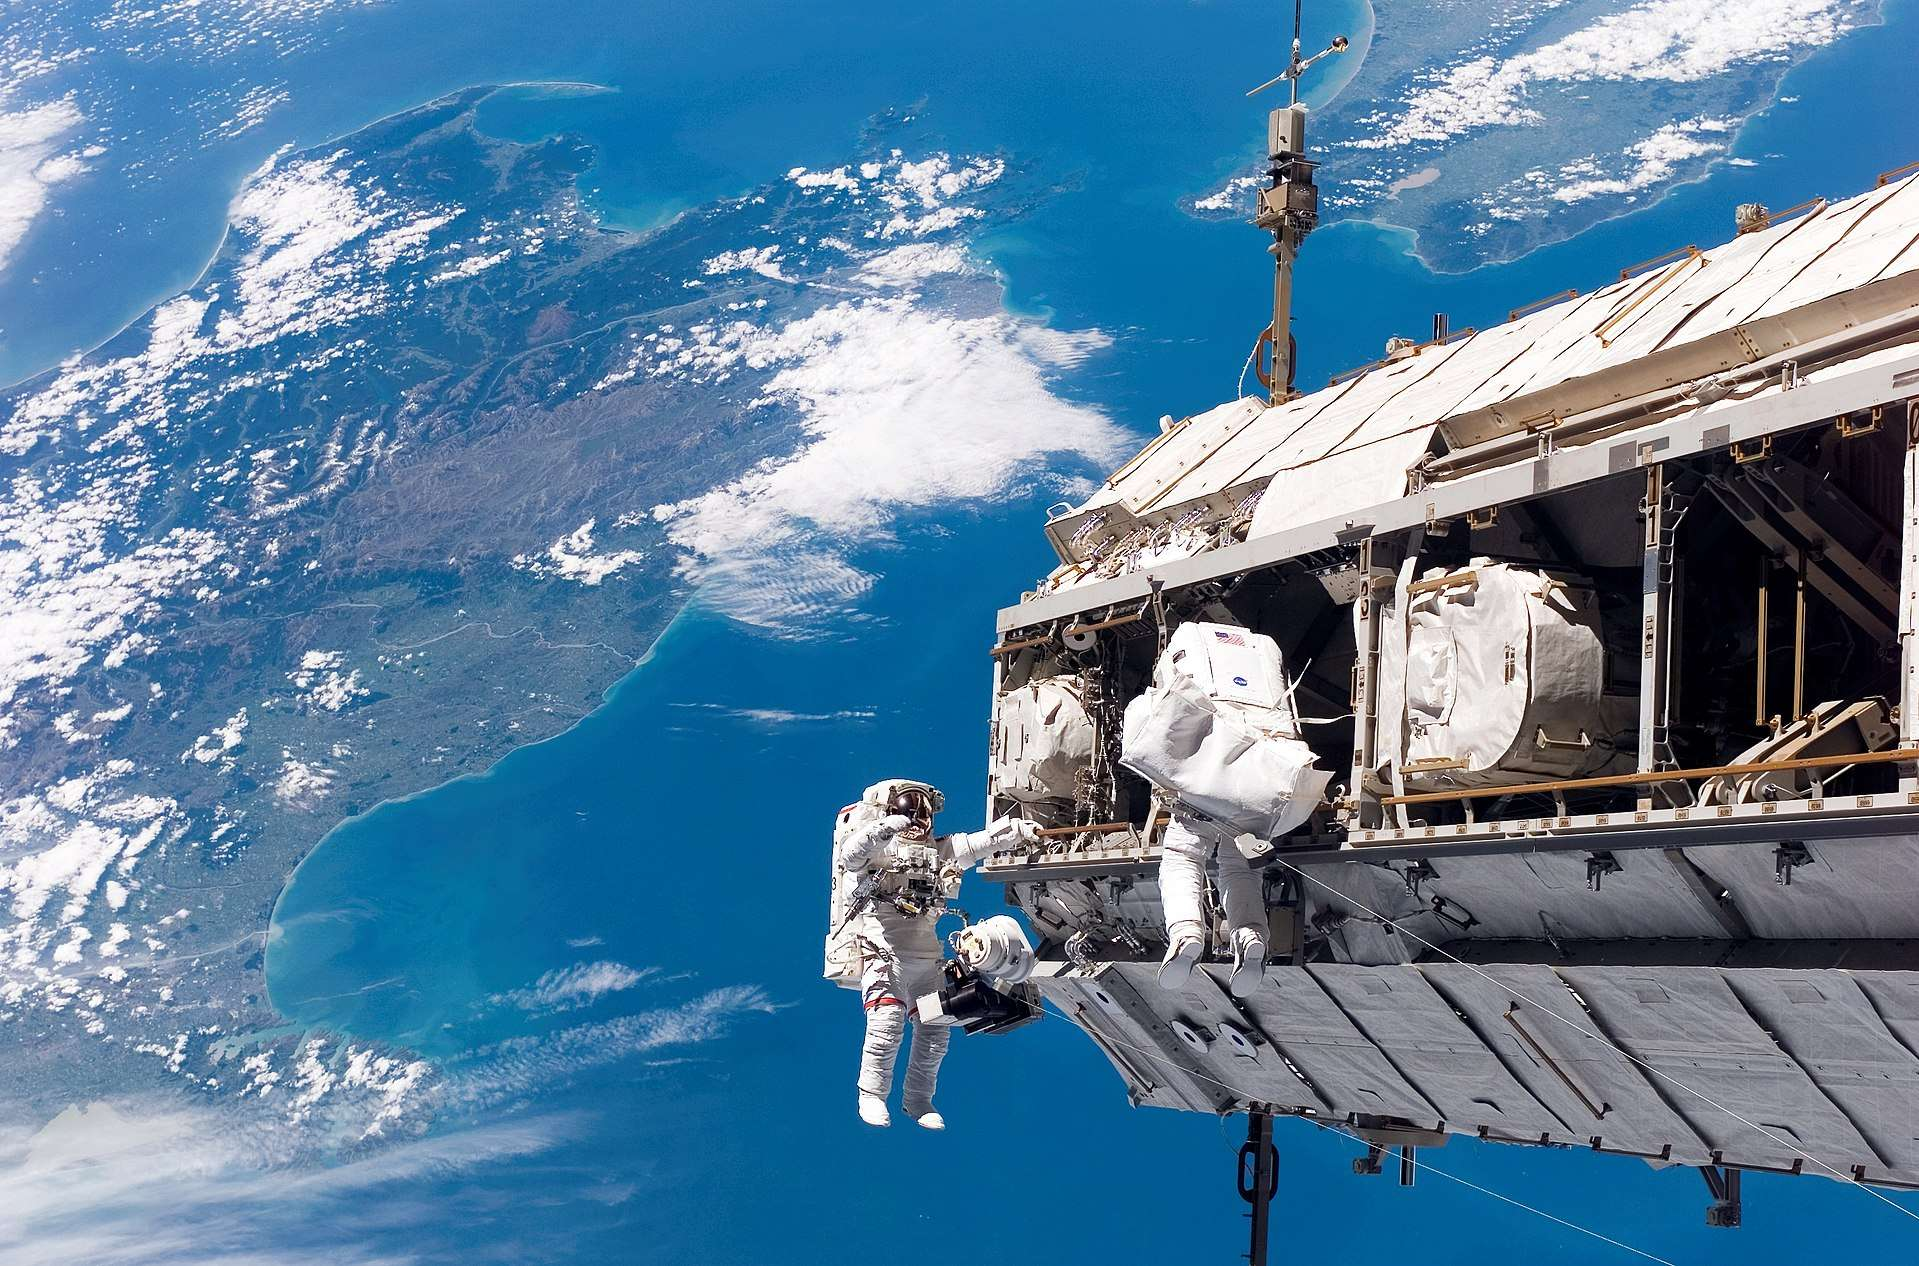 American and European space agency astronauts construct the International Space Station on December 11, 2006. (Image Credit: NASA)